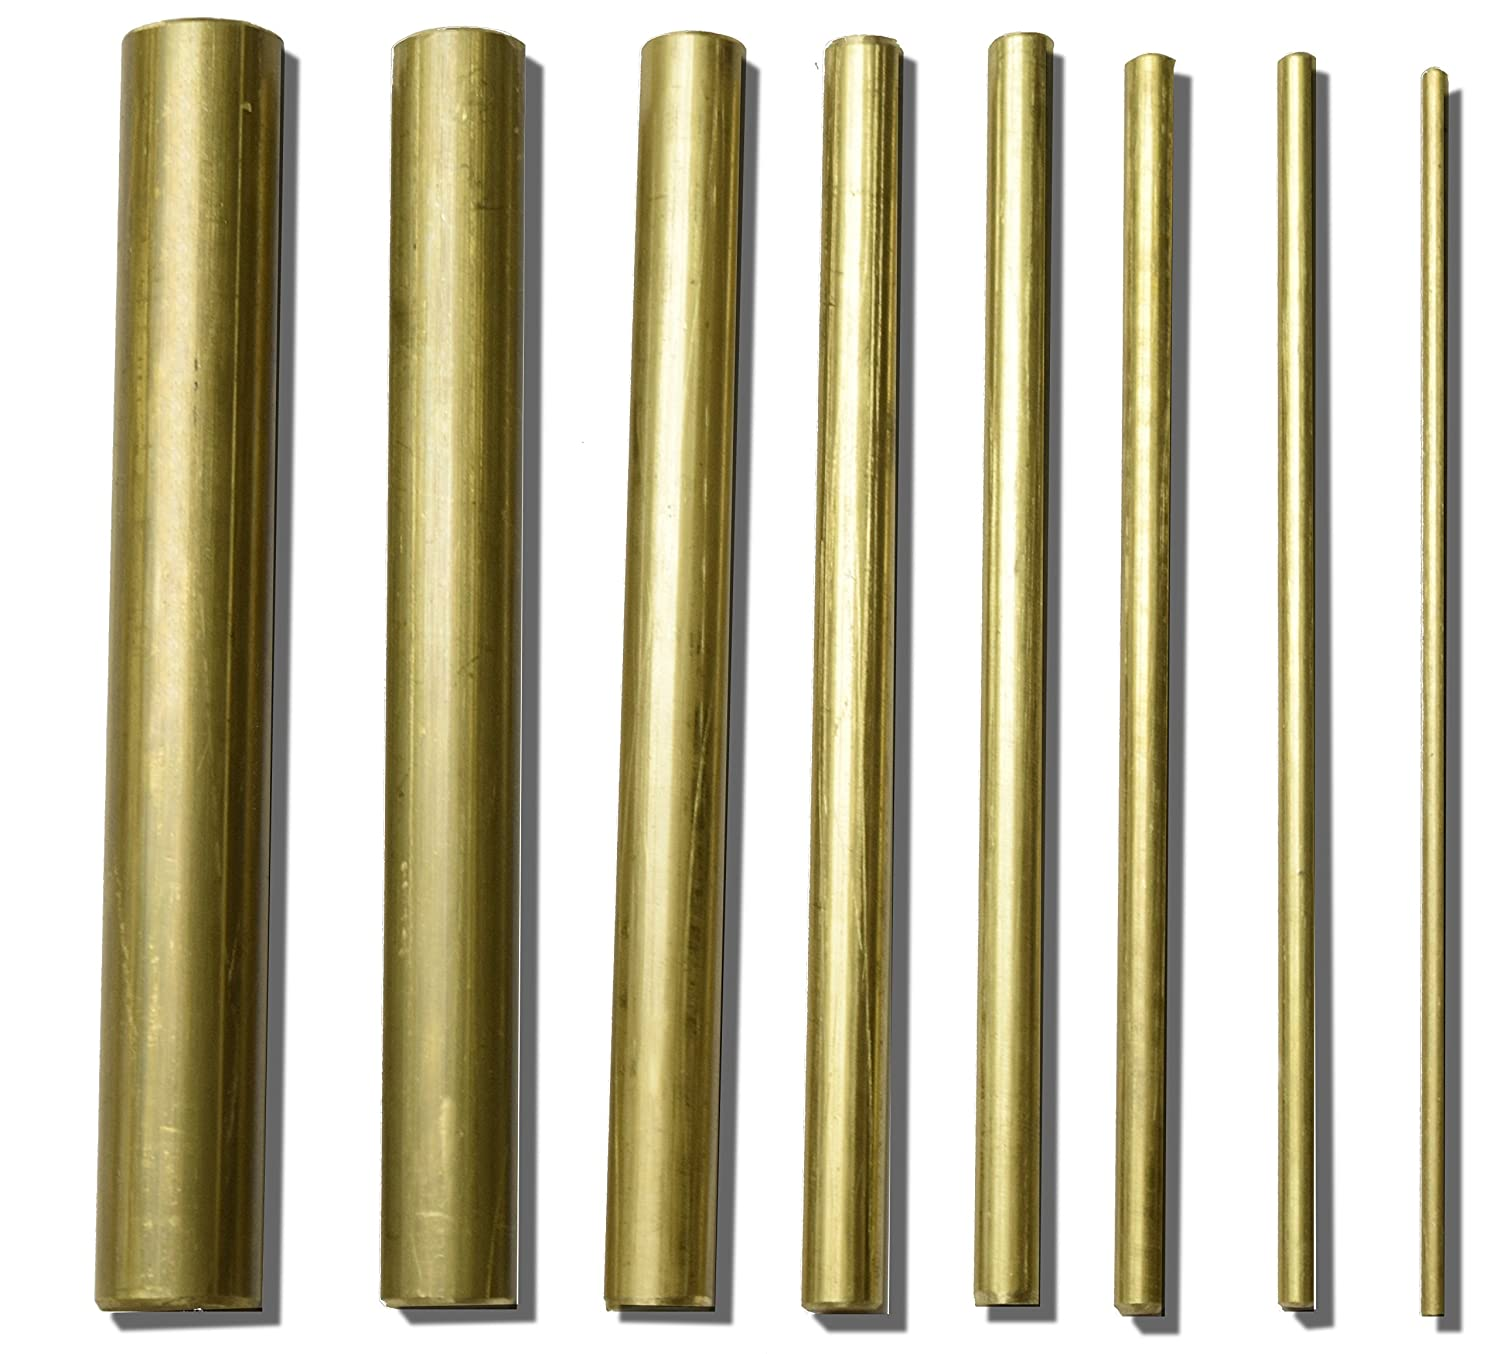 1//2 Diameter RMP Cold Rolled 1018 Round Bar 72 Length Mill Finish